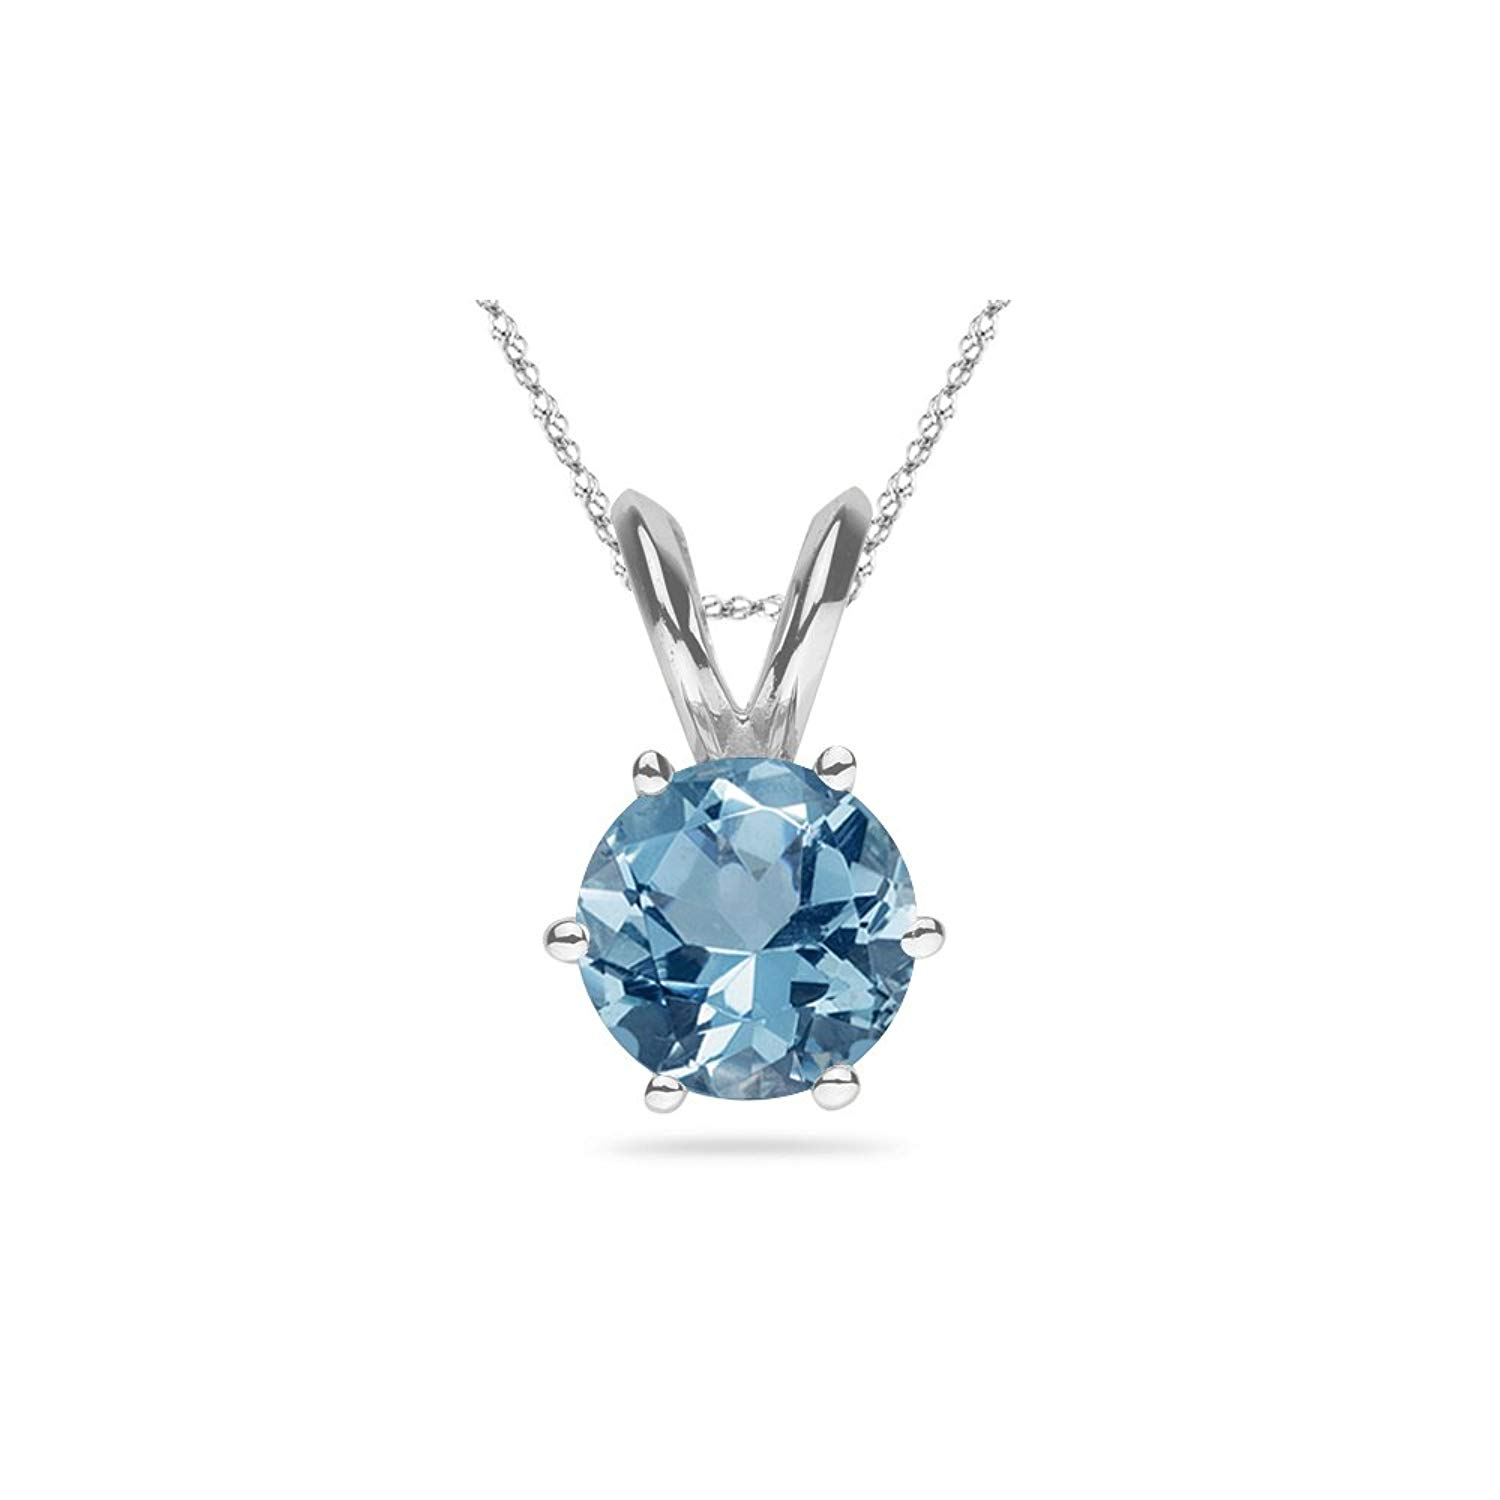 3e7f8be3dd4 Get Quotations · 1.60 Cts of 7 mm AAA Round Aquamarine Solitaire Pendant in 14K  White Gold